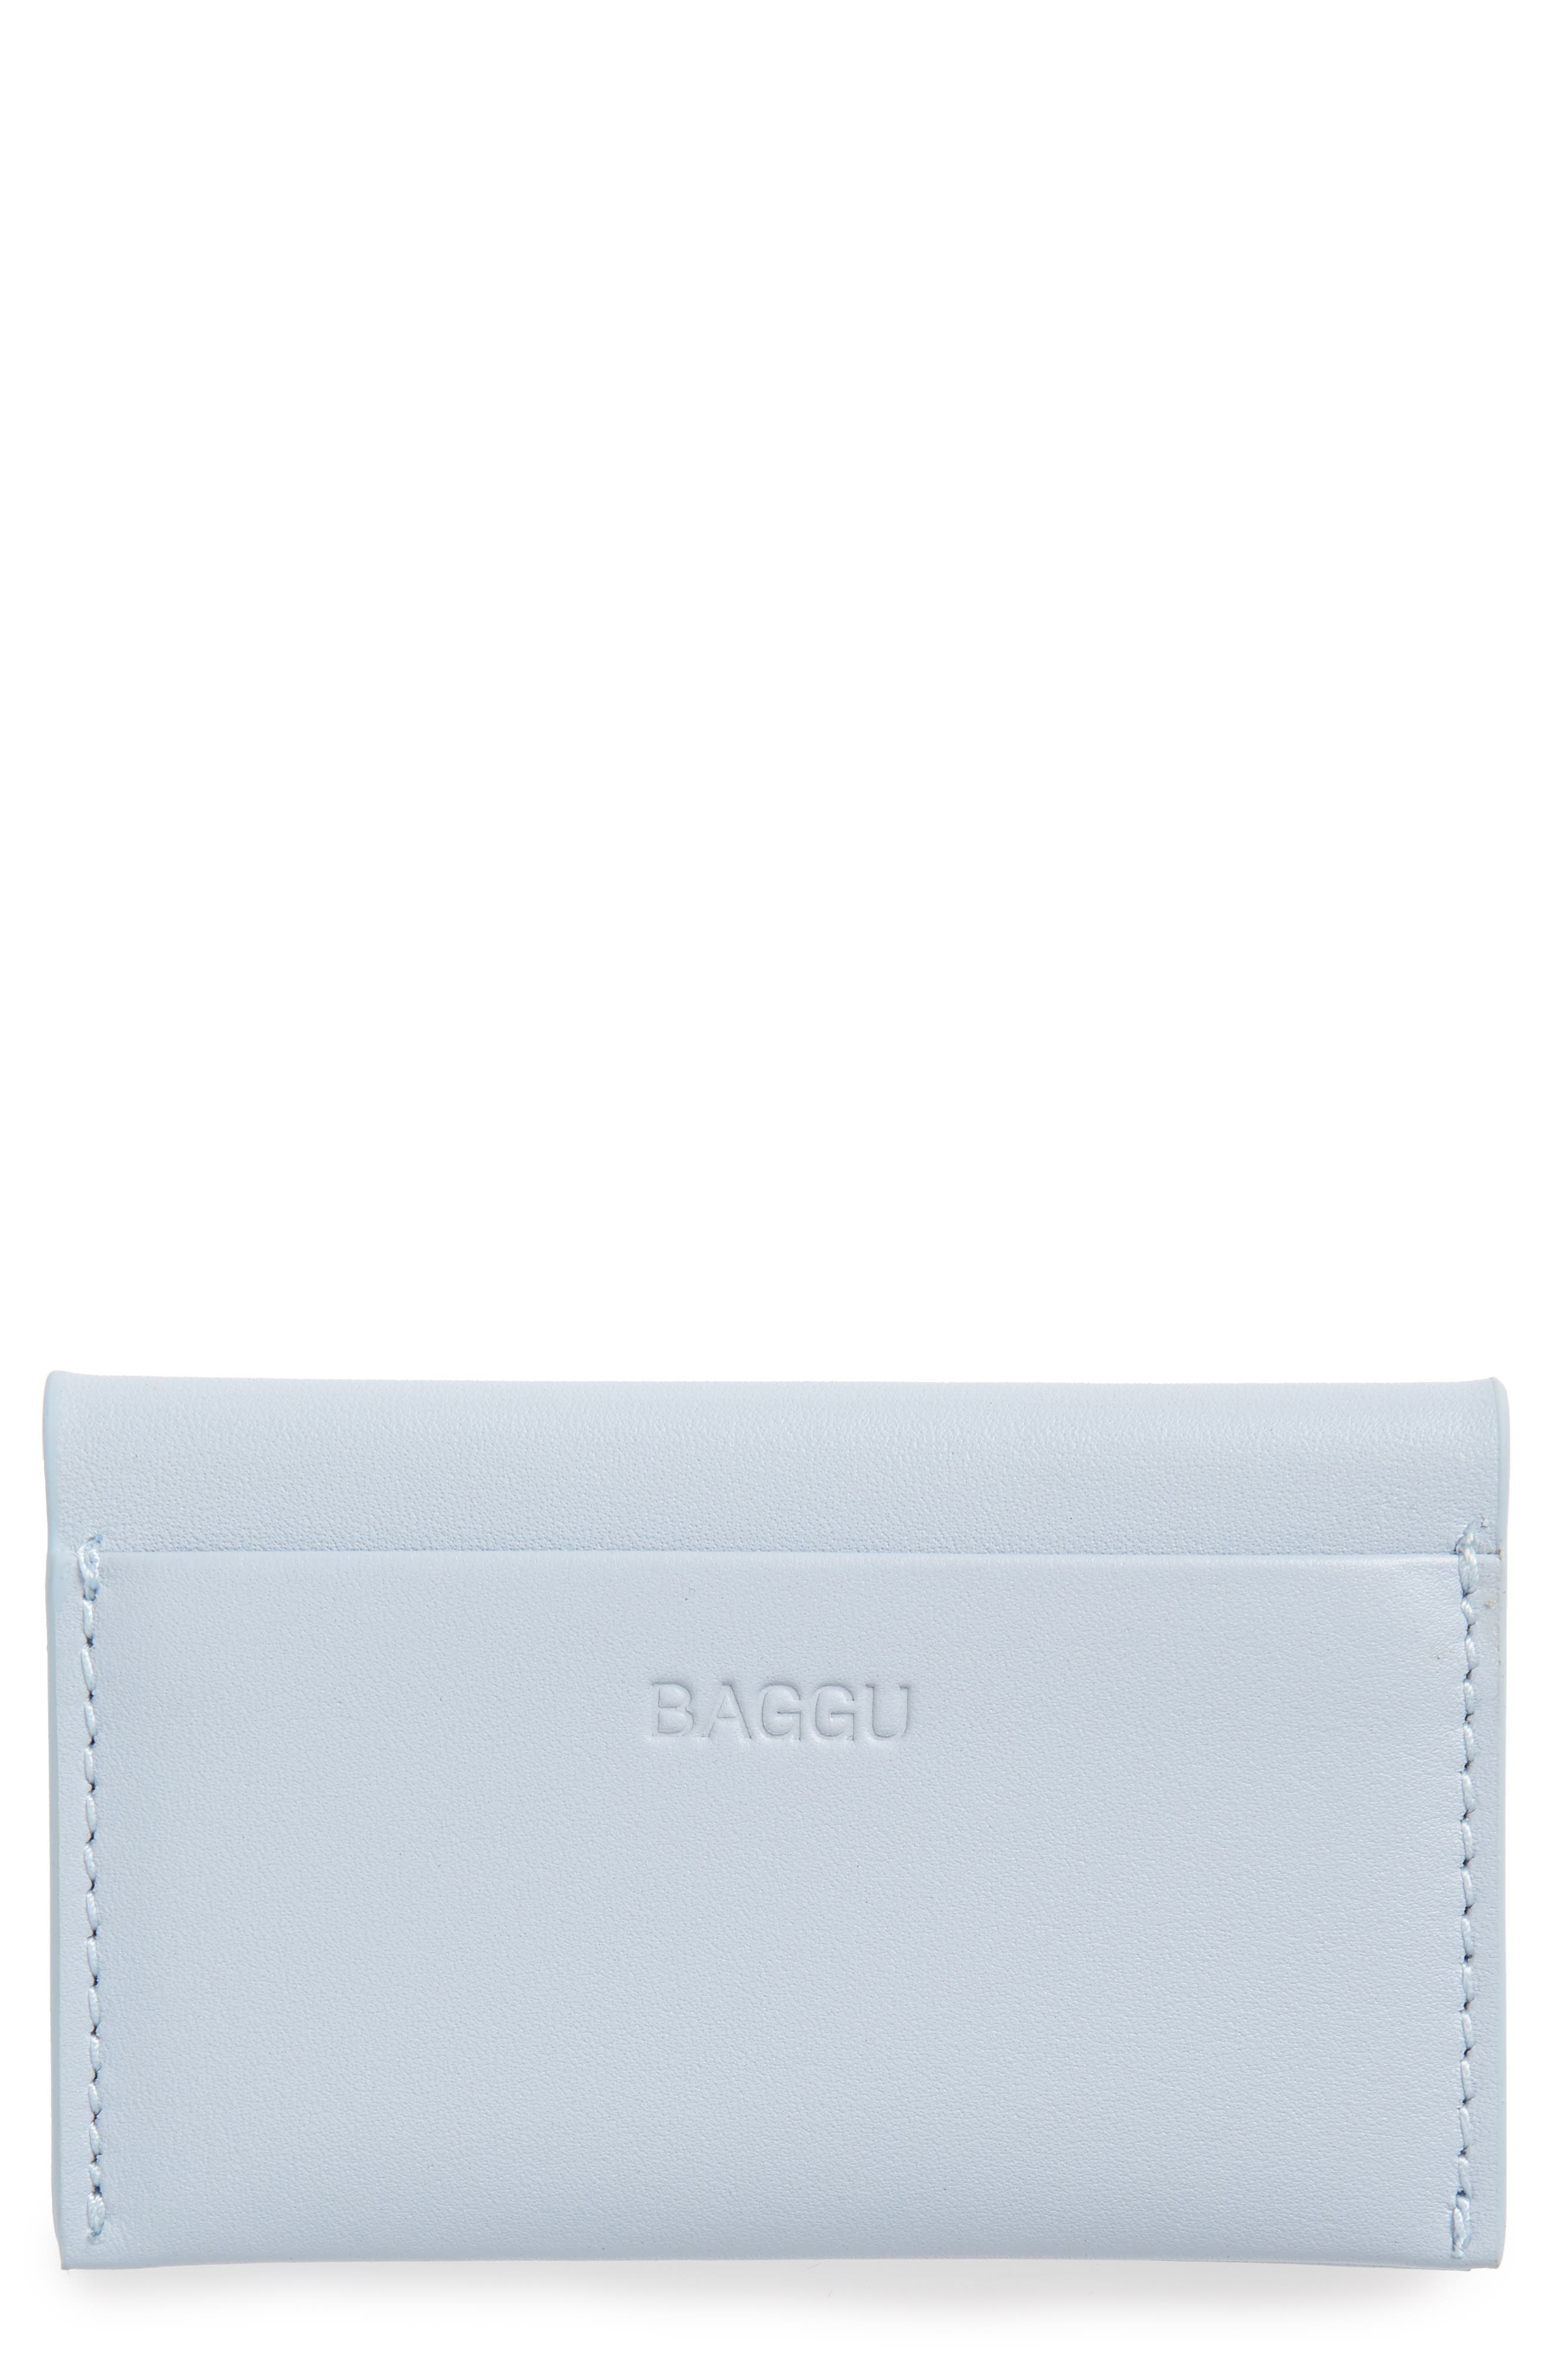 Leather Card Case,                             Main thumbnail 1, color,                             Powder Blue